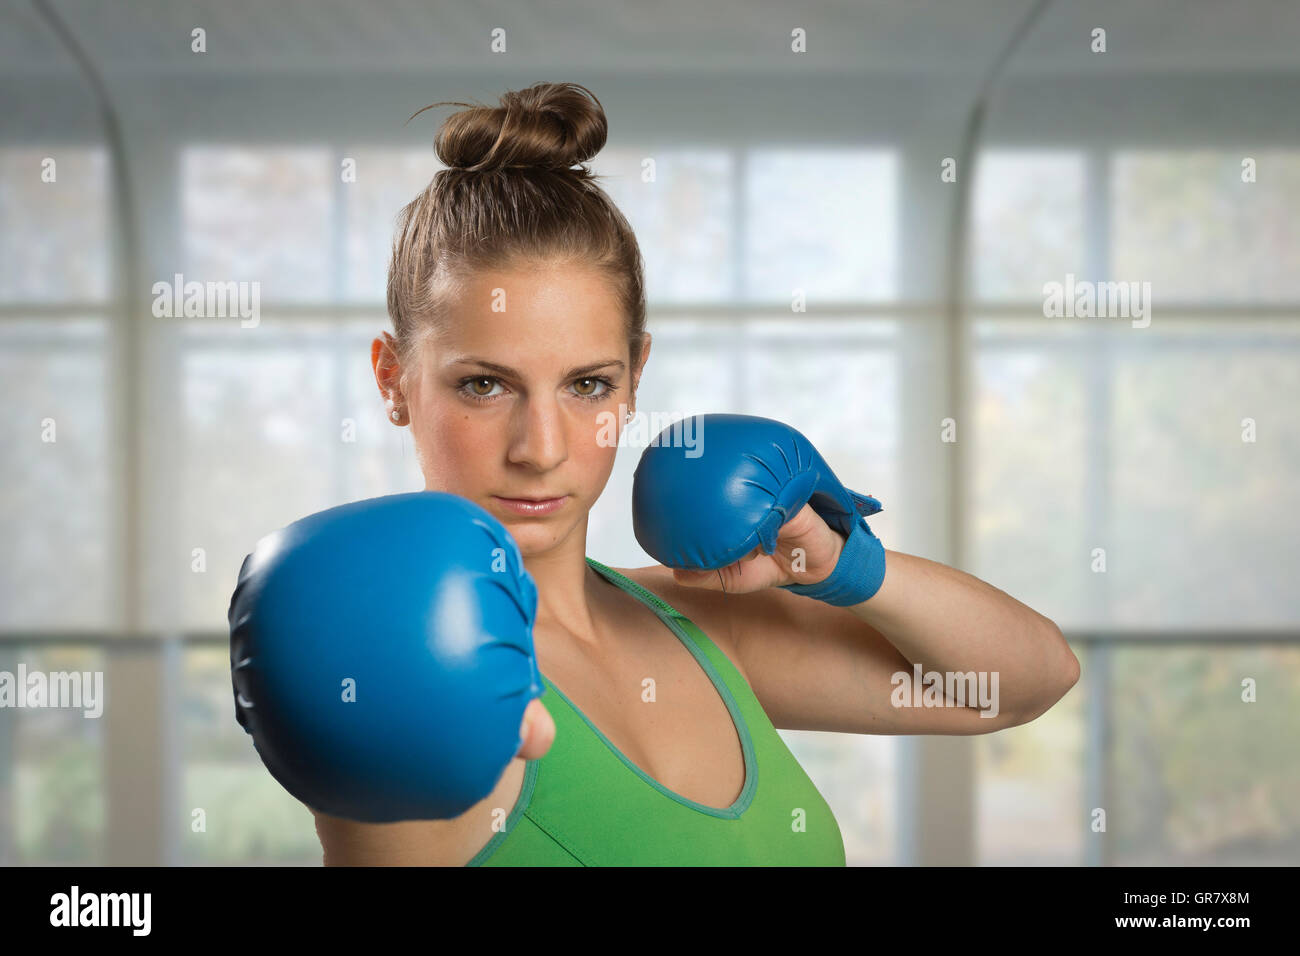 Young Woman With Boxing Gloves Showing Ready For Battle - Stock Image